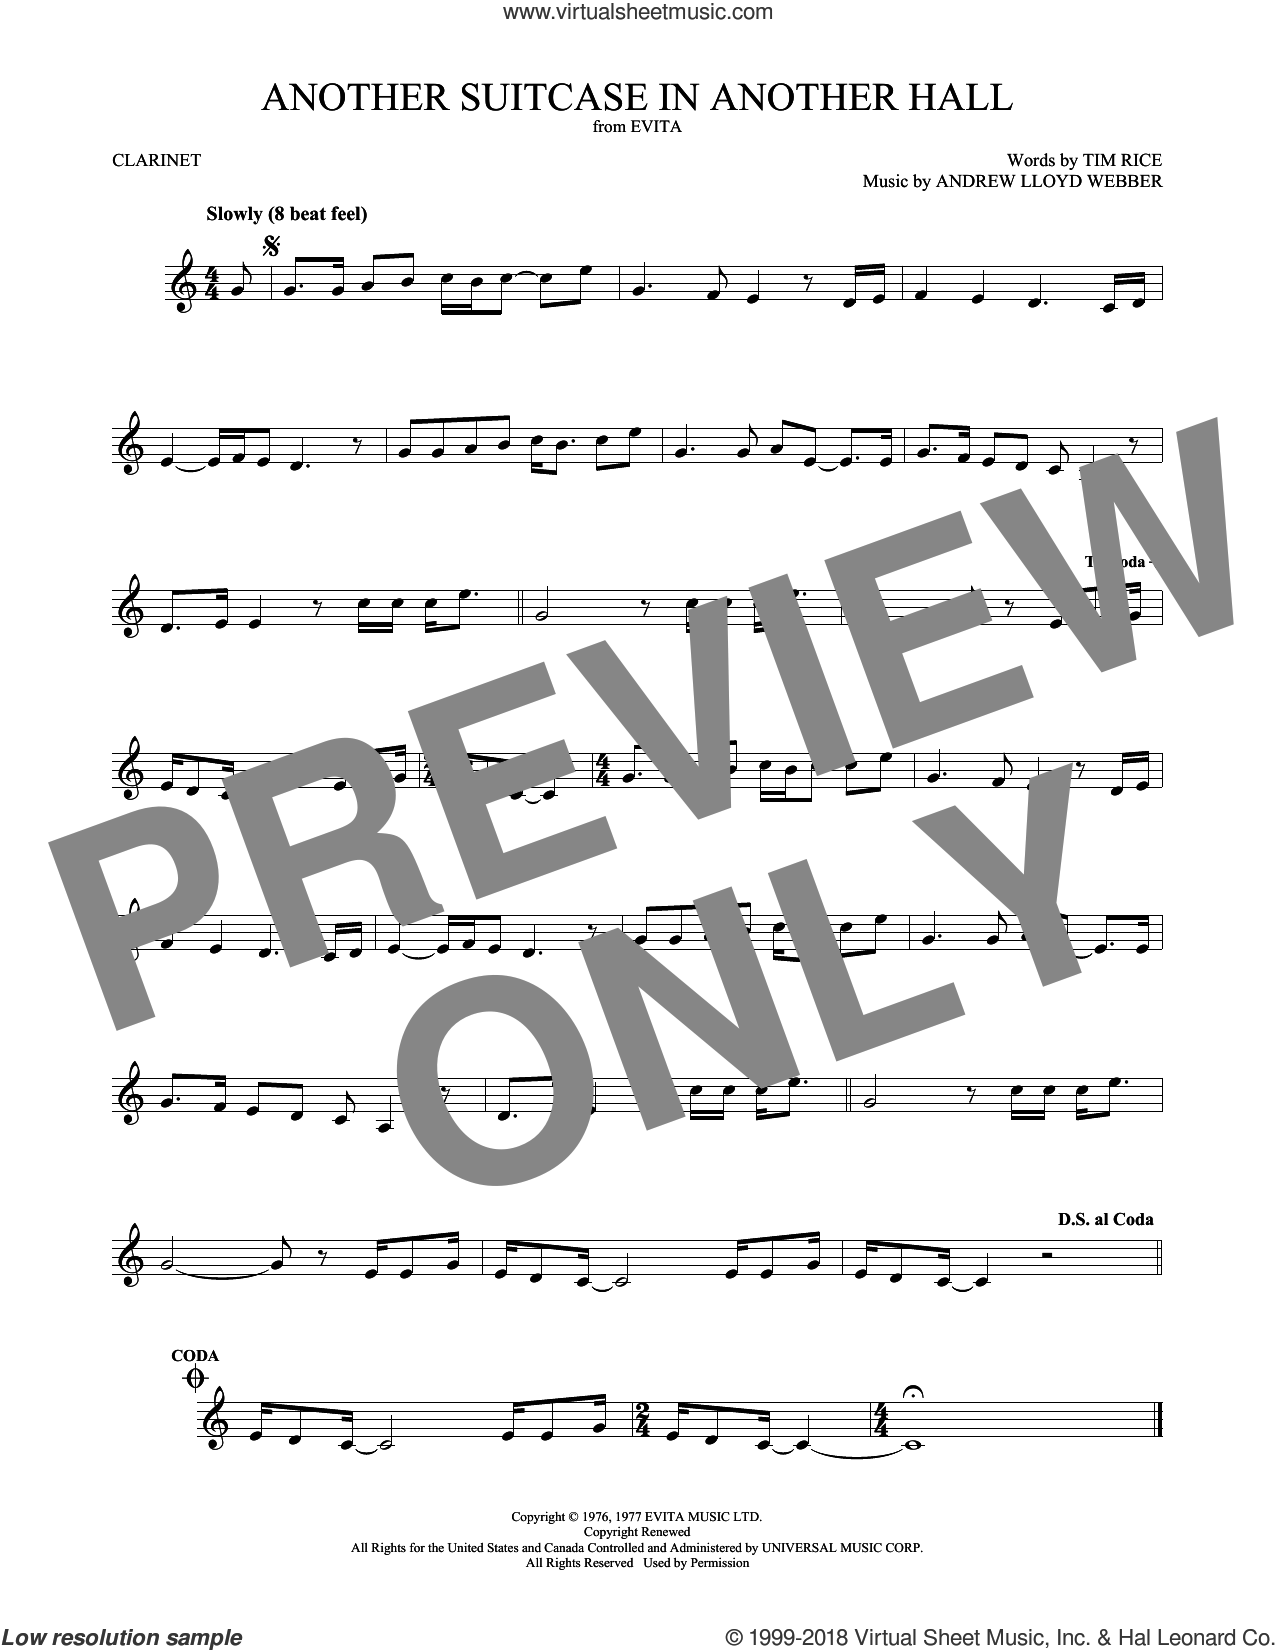 Another Suitcase In Another Hall sheet music for clarinet solo by Andrew Lloyd Webber and Tim Rice, intermediate skill level